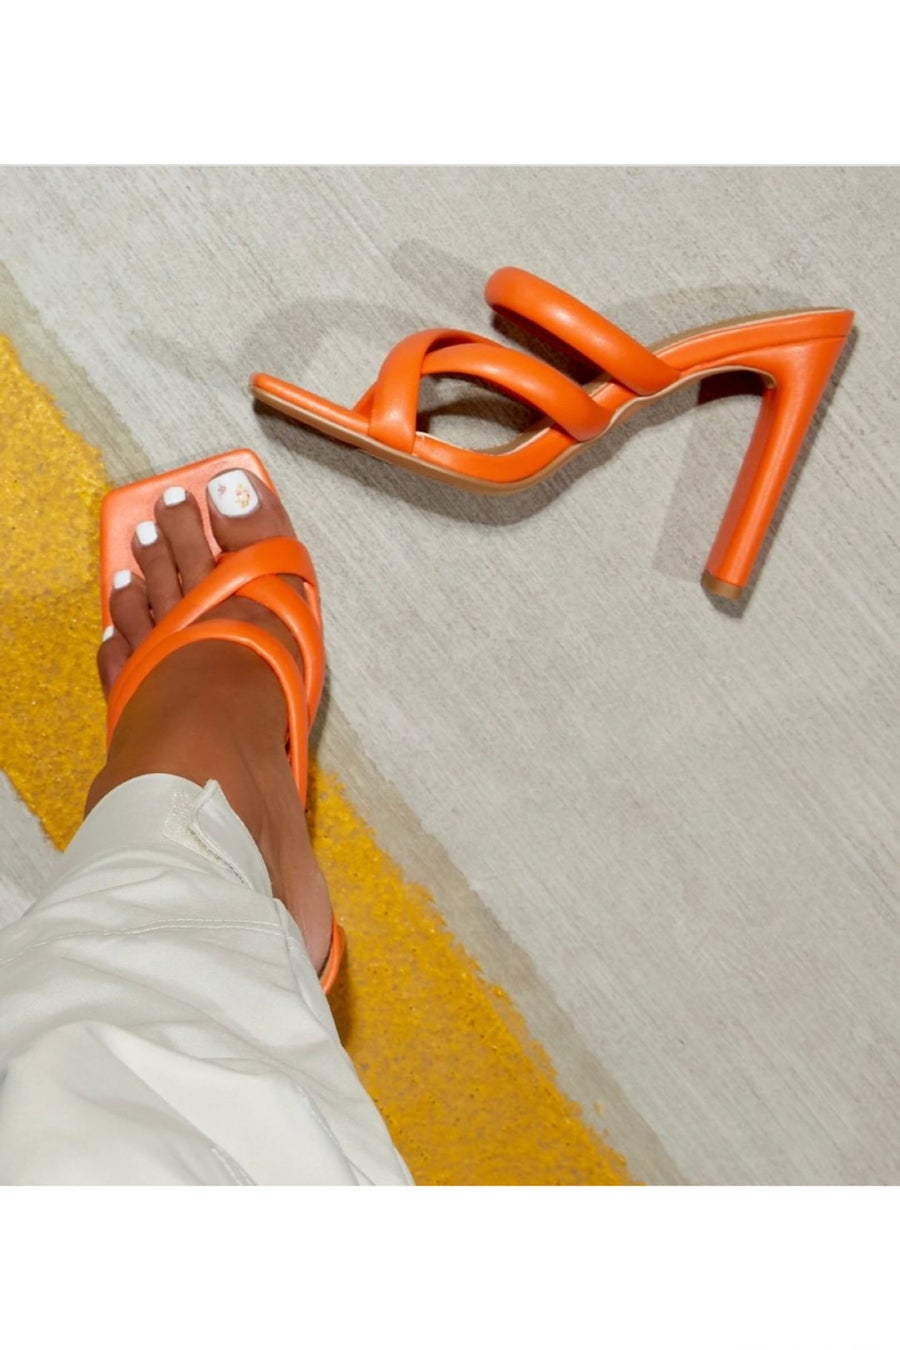 Image of Fuji Square Toe Padded Strappy Think Block Heel Mule In Orange Faux Leather